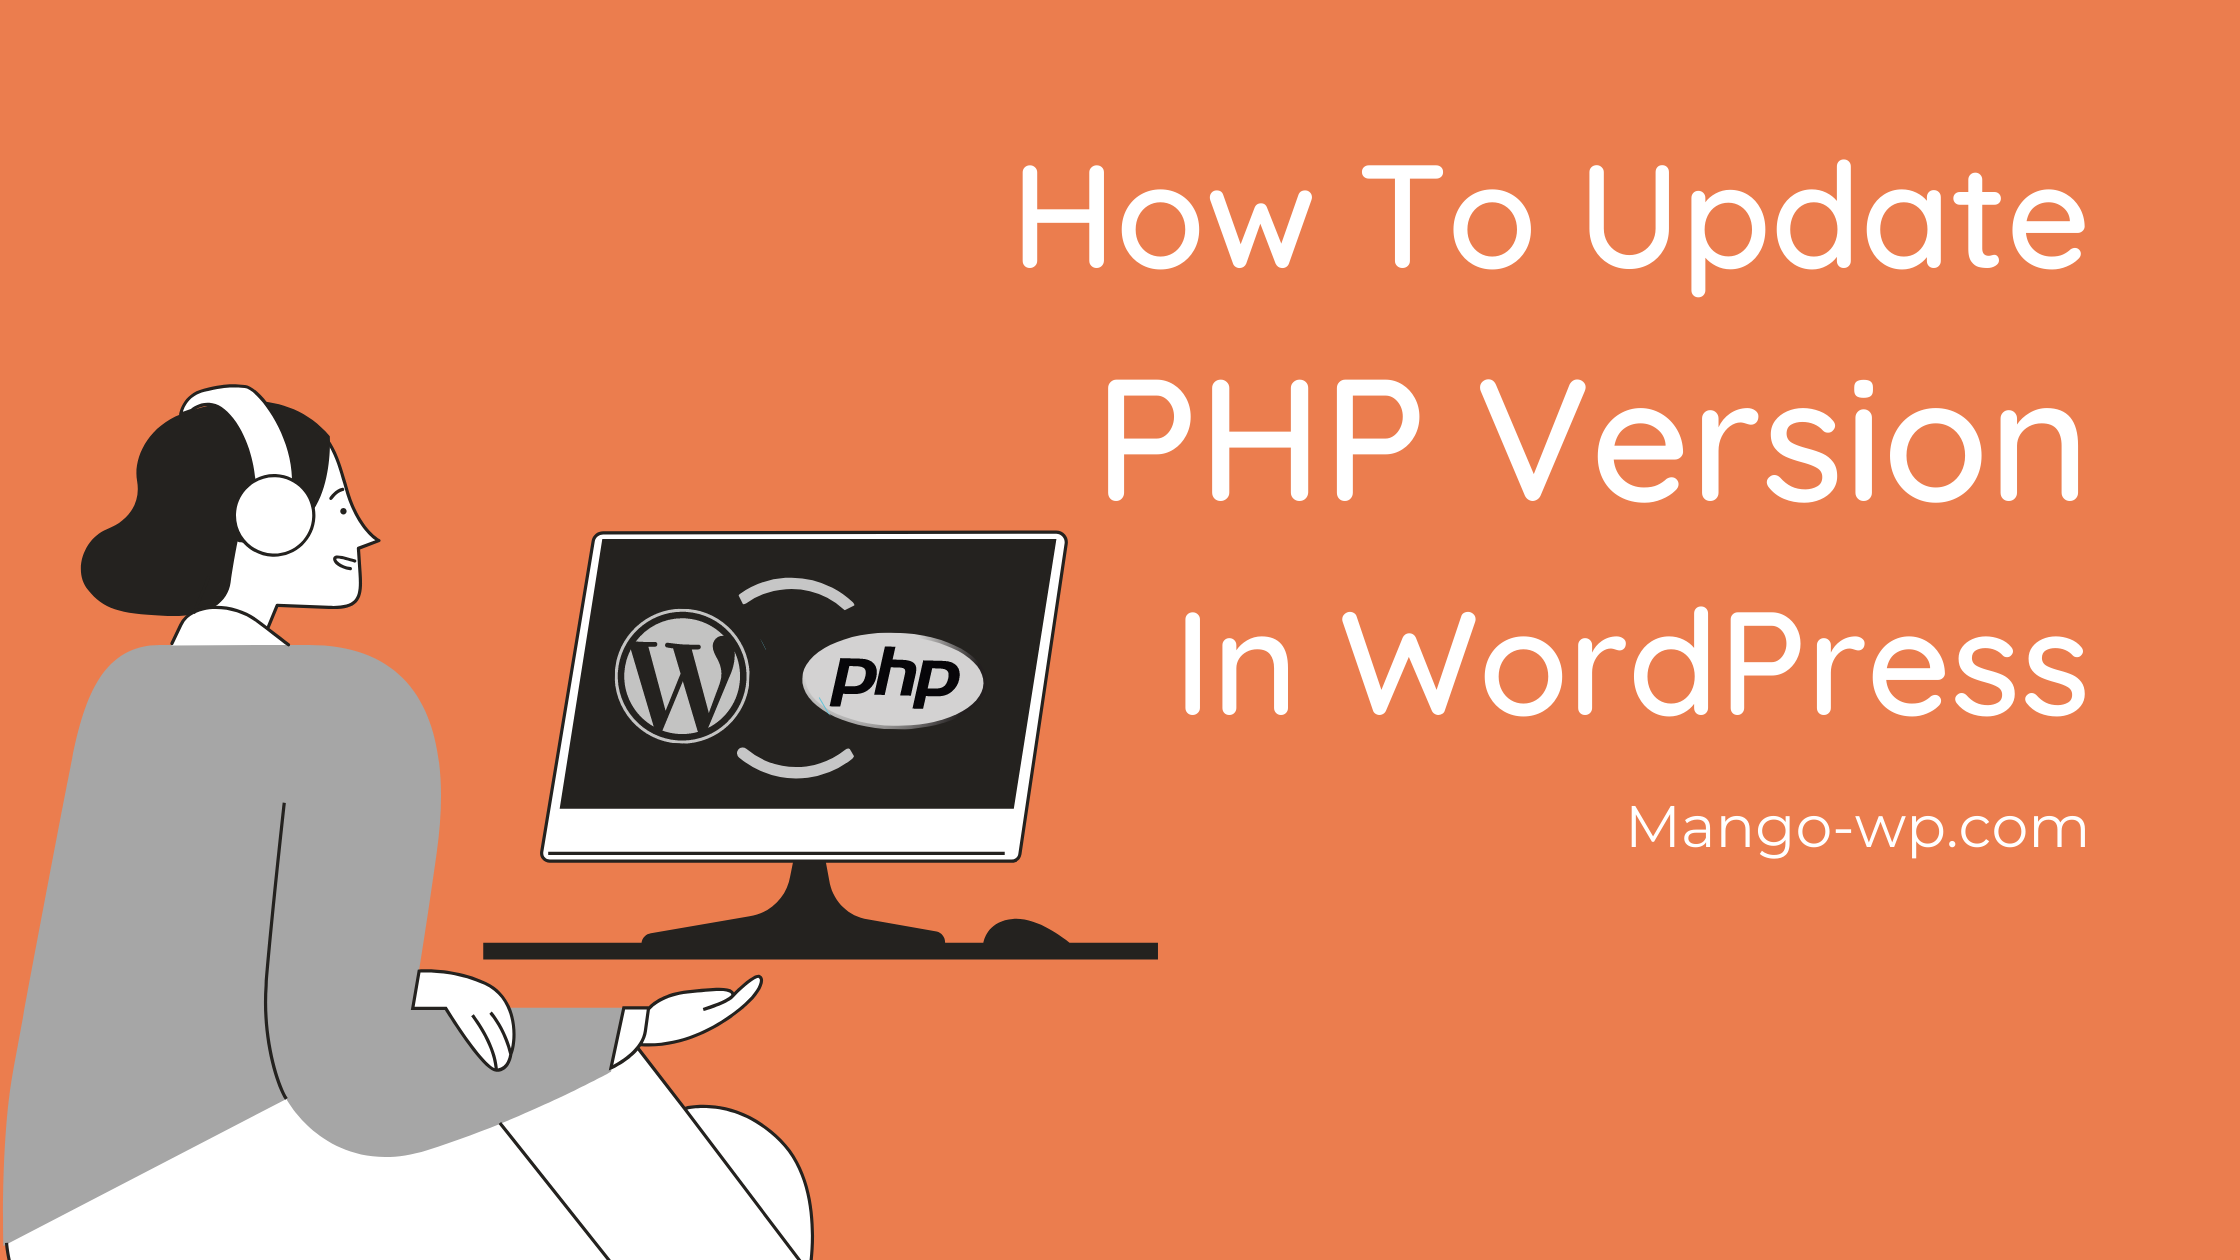 Update the PHP version in WordPress